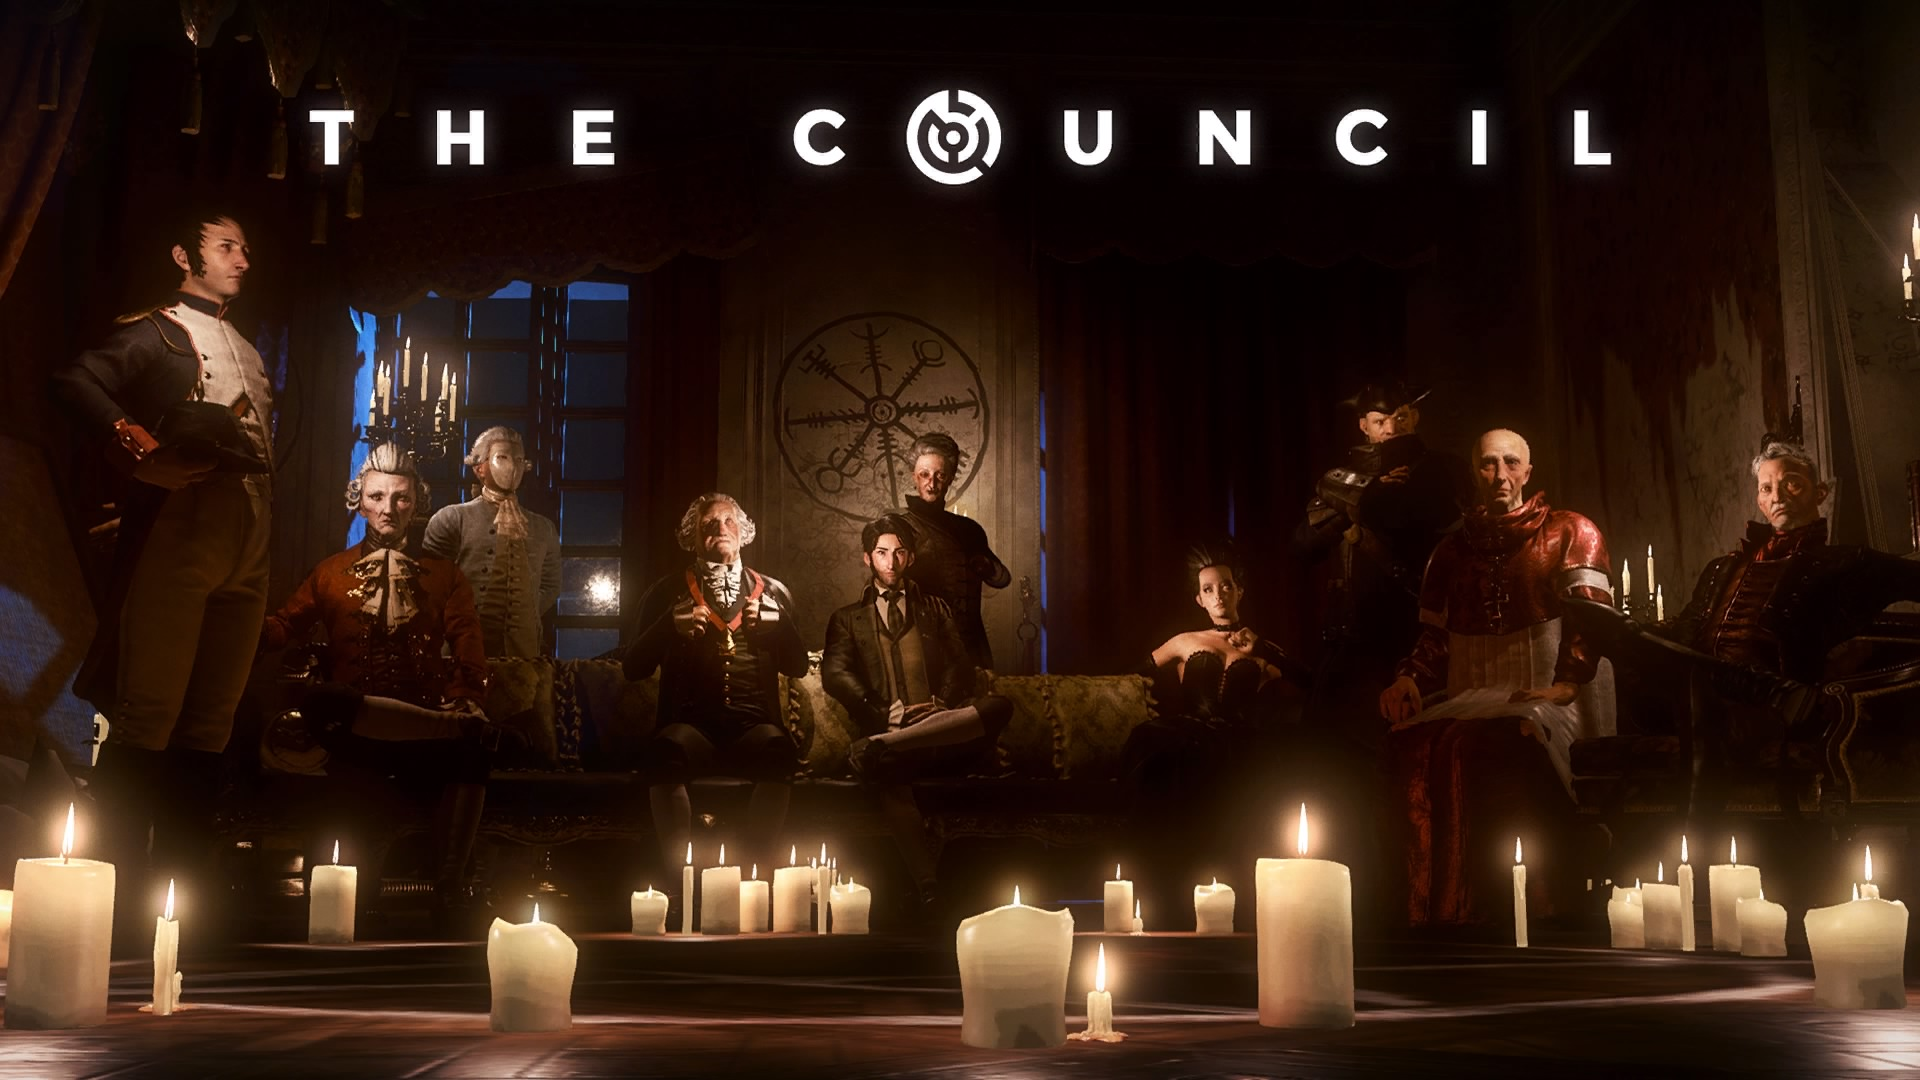 The Council_20180317125325